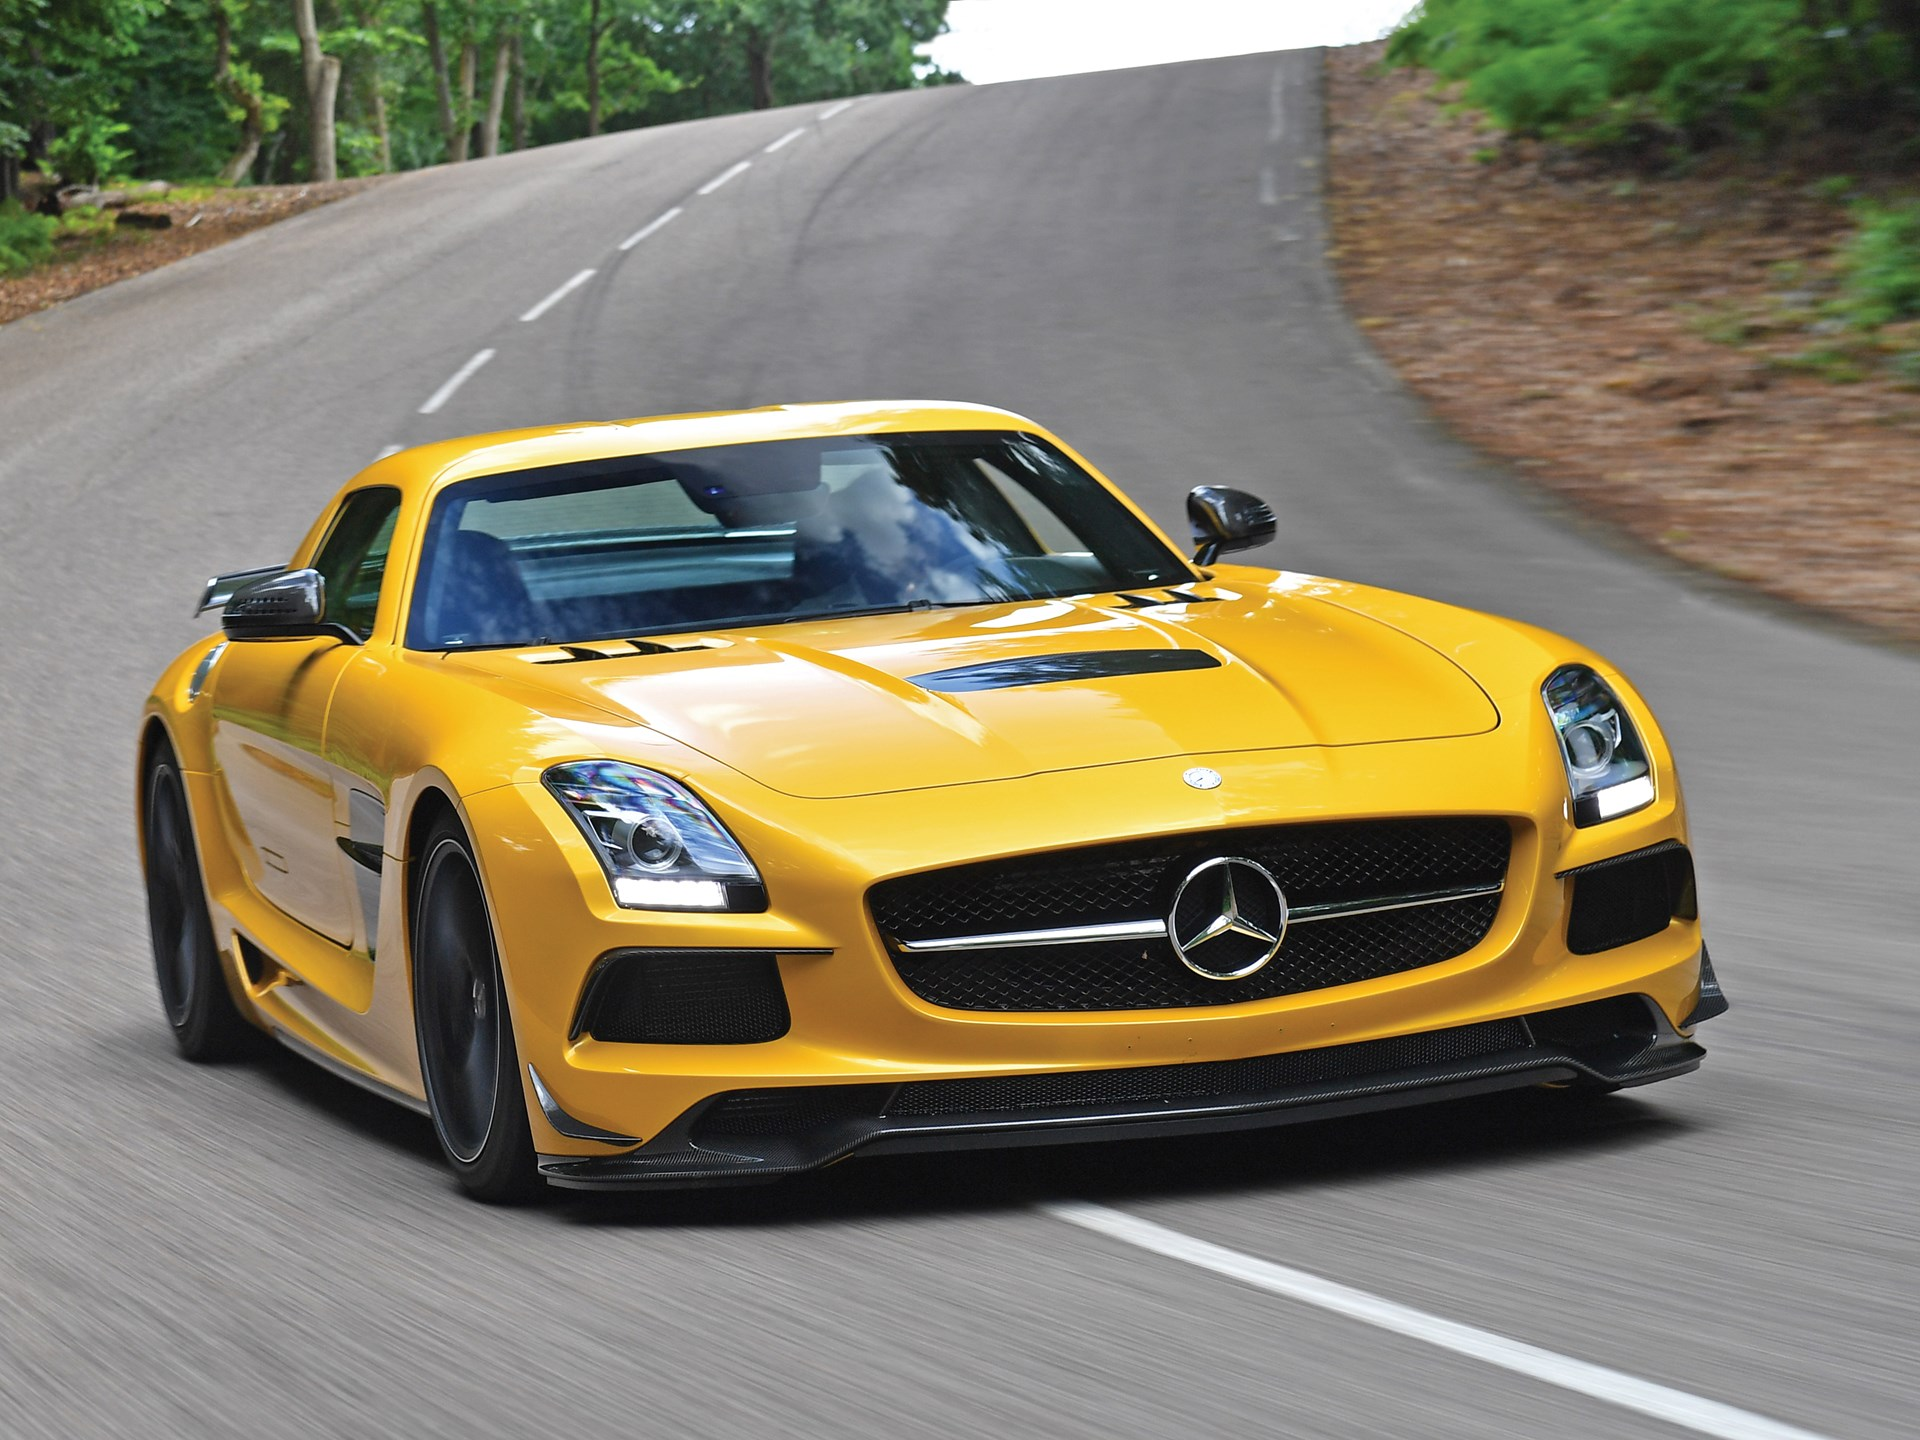 Sls Black Series >> Rm Sotheby S 2014 Mercedes Benz Sls Amg Black Series London 2016